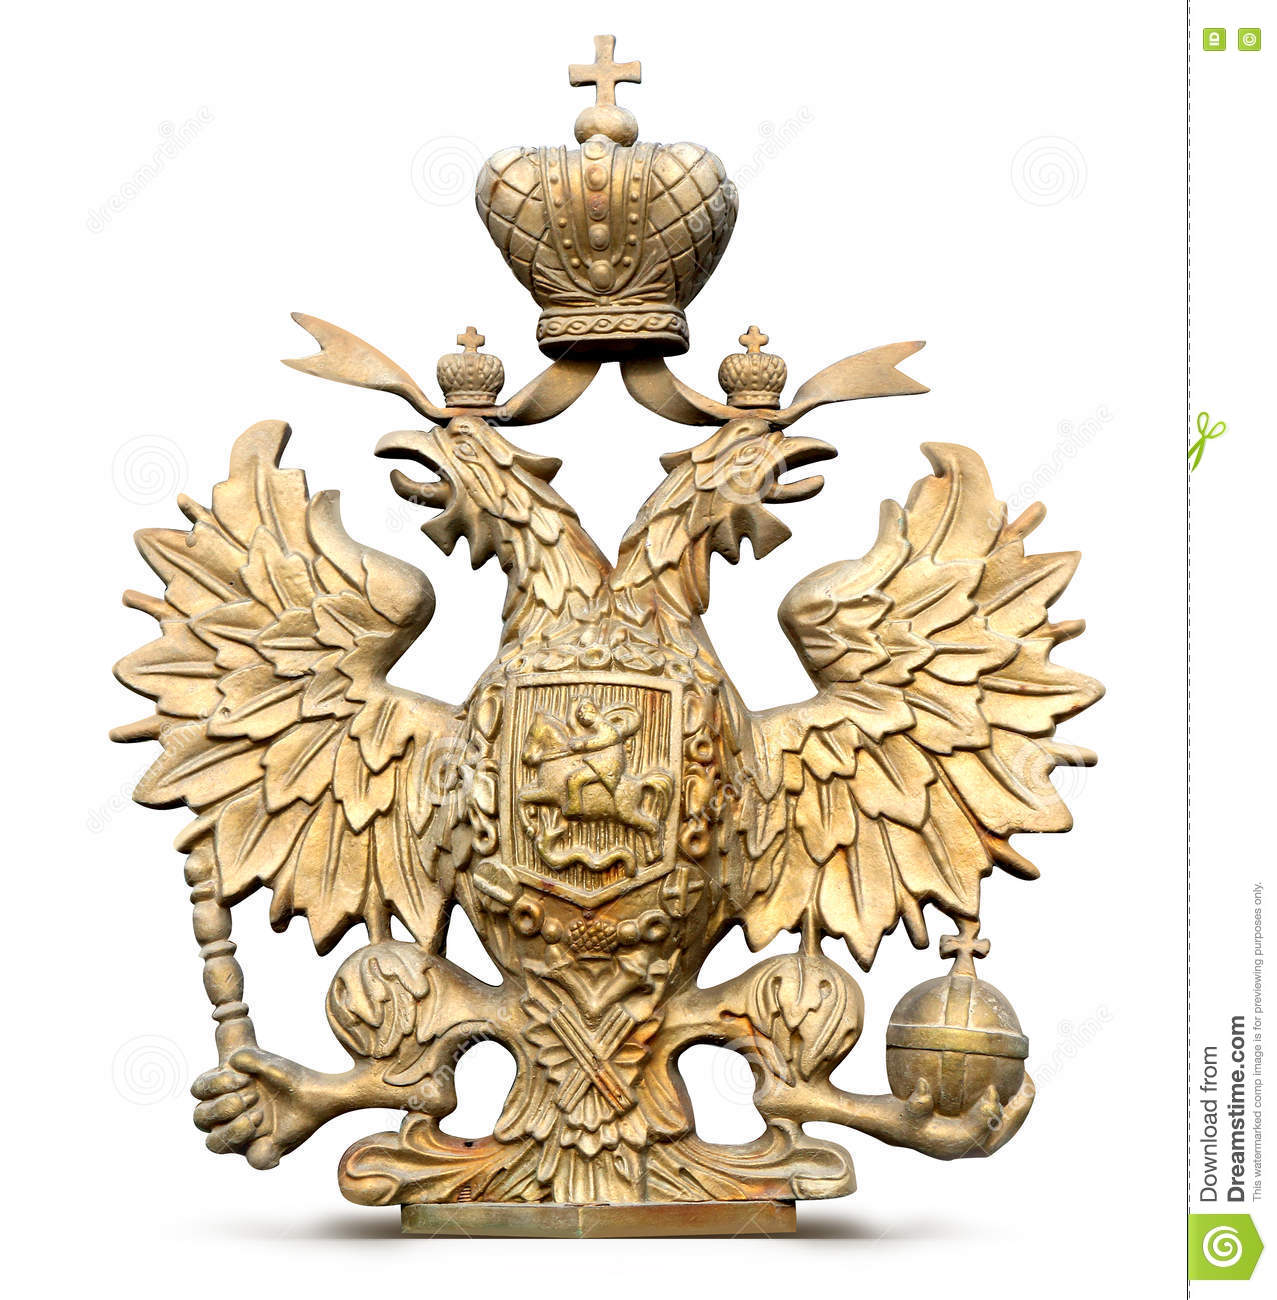 Brass double-headed eagle symbol of Russia